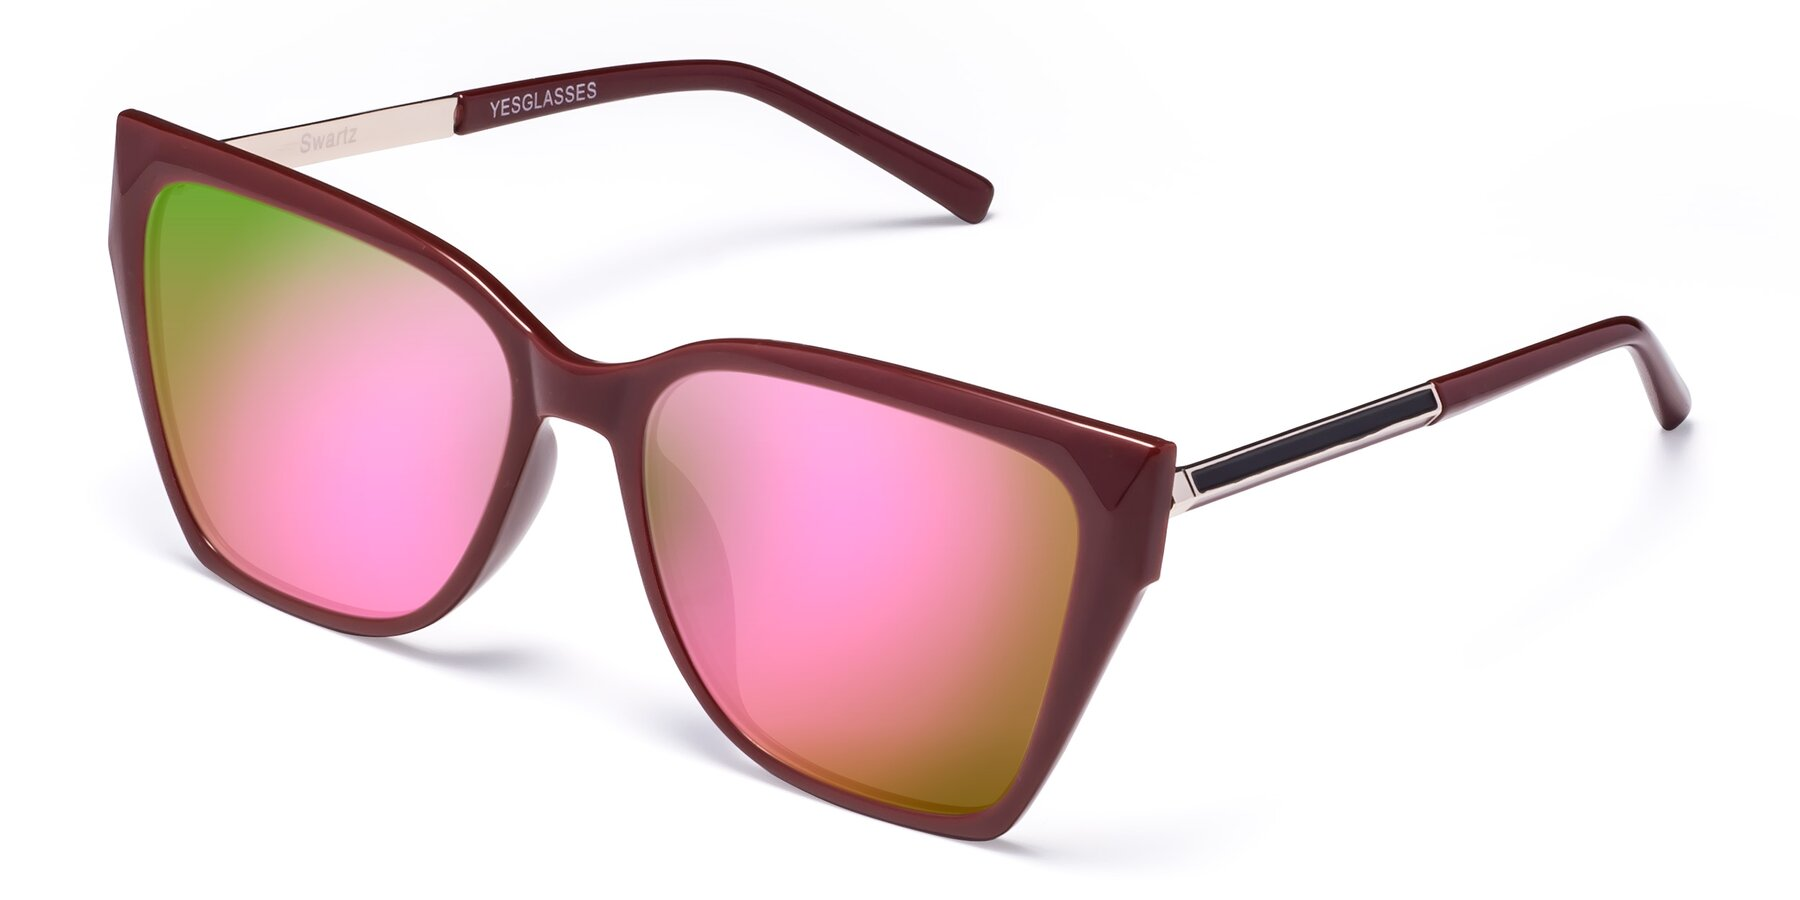 Angle of Swartz in Wine with Pink Mirrored Lenses